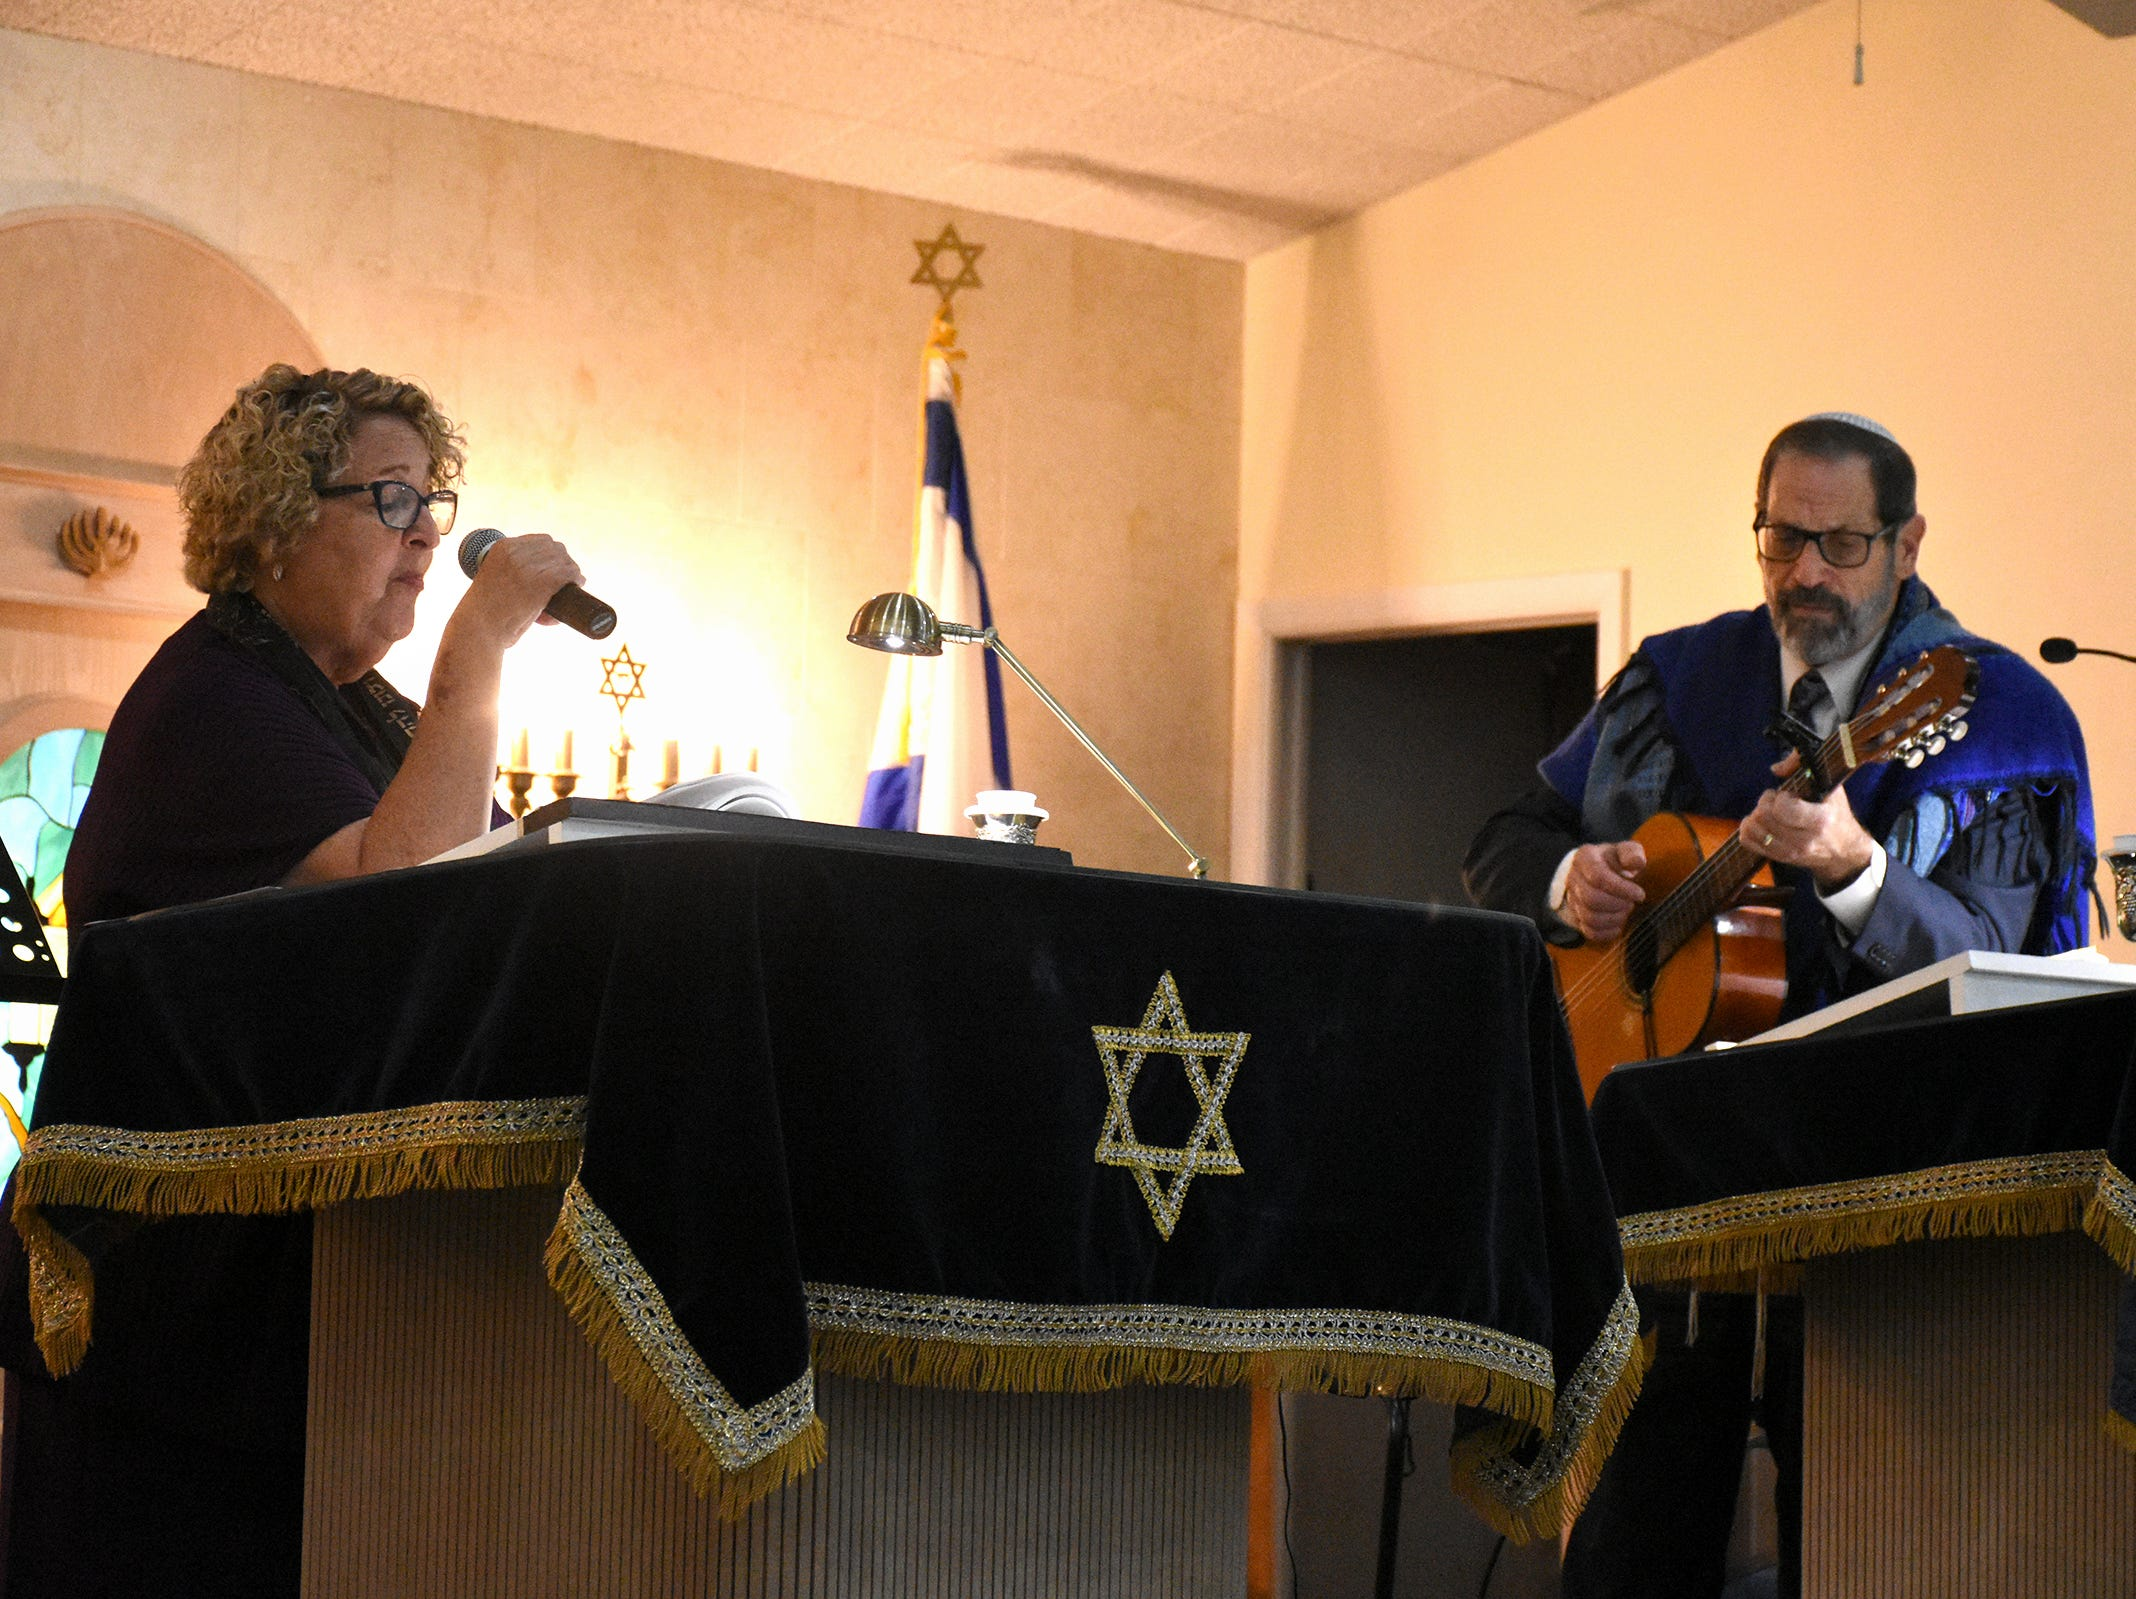 Rabbi Mark Gross accompanies cantor Hari Jacobsen. The Jewish Congregation of Marco Island held a Shabbat service Friday evening marking the 80th anniversary of Kristallnacht, when Nazi Germany brought perseution of Jews out into the open.